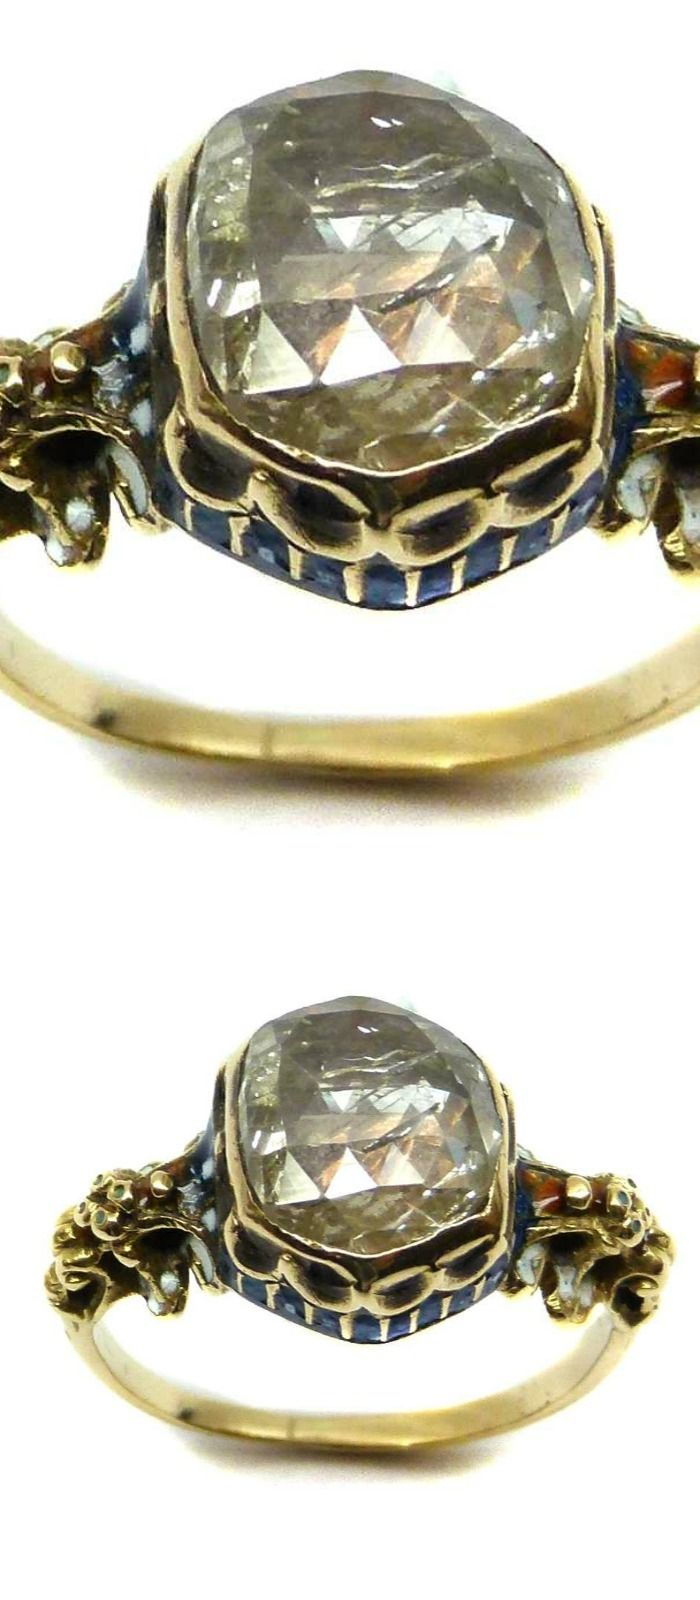 17th century rose cut diamond, enamel and gold ring, English c.1650, the diamond close collet set within an hexagonal bezel, the gallery with moulded scroll detail and blue and white enamel, scrolled shoulders with traces of white enamel, a butterfly engraved to the back of the collet. Via SJ Phillips.